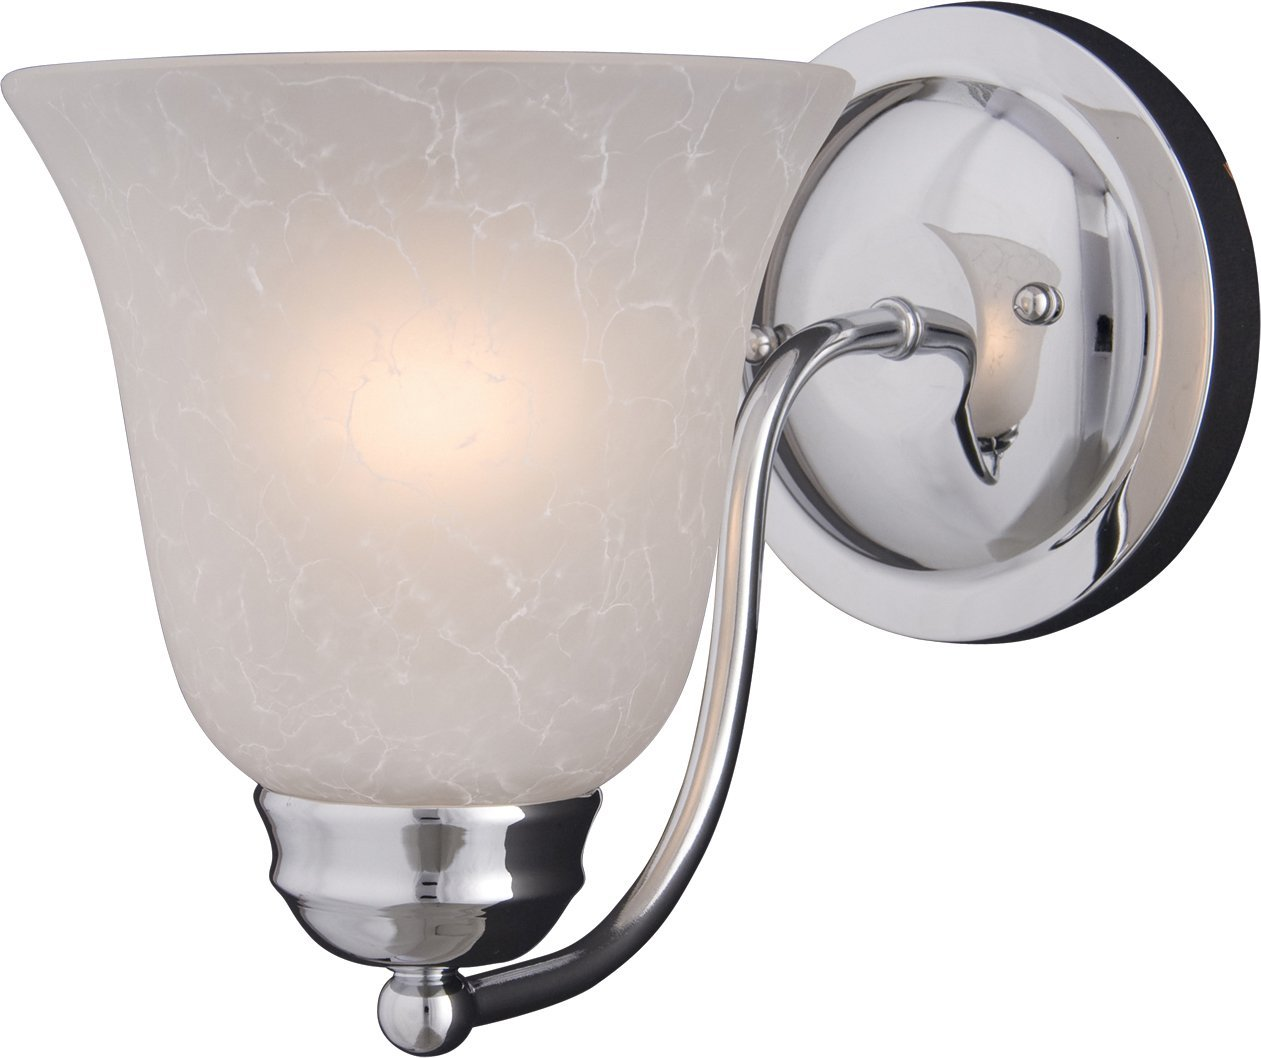 Maxim 2120ICPC Basix 1-Light Wall Sconce Bath Vanity, Polished Chrome Finish, Ice Glass, MB Incandescent Incandescent Bulb , 100W Max., Damp Safety Rating, Standard Dimmable, Glass Shade Material, 4600 Rated Lumens